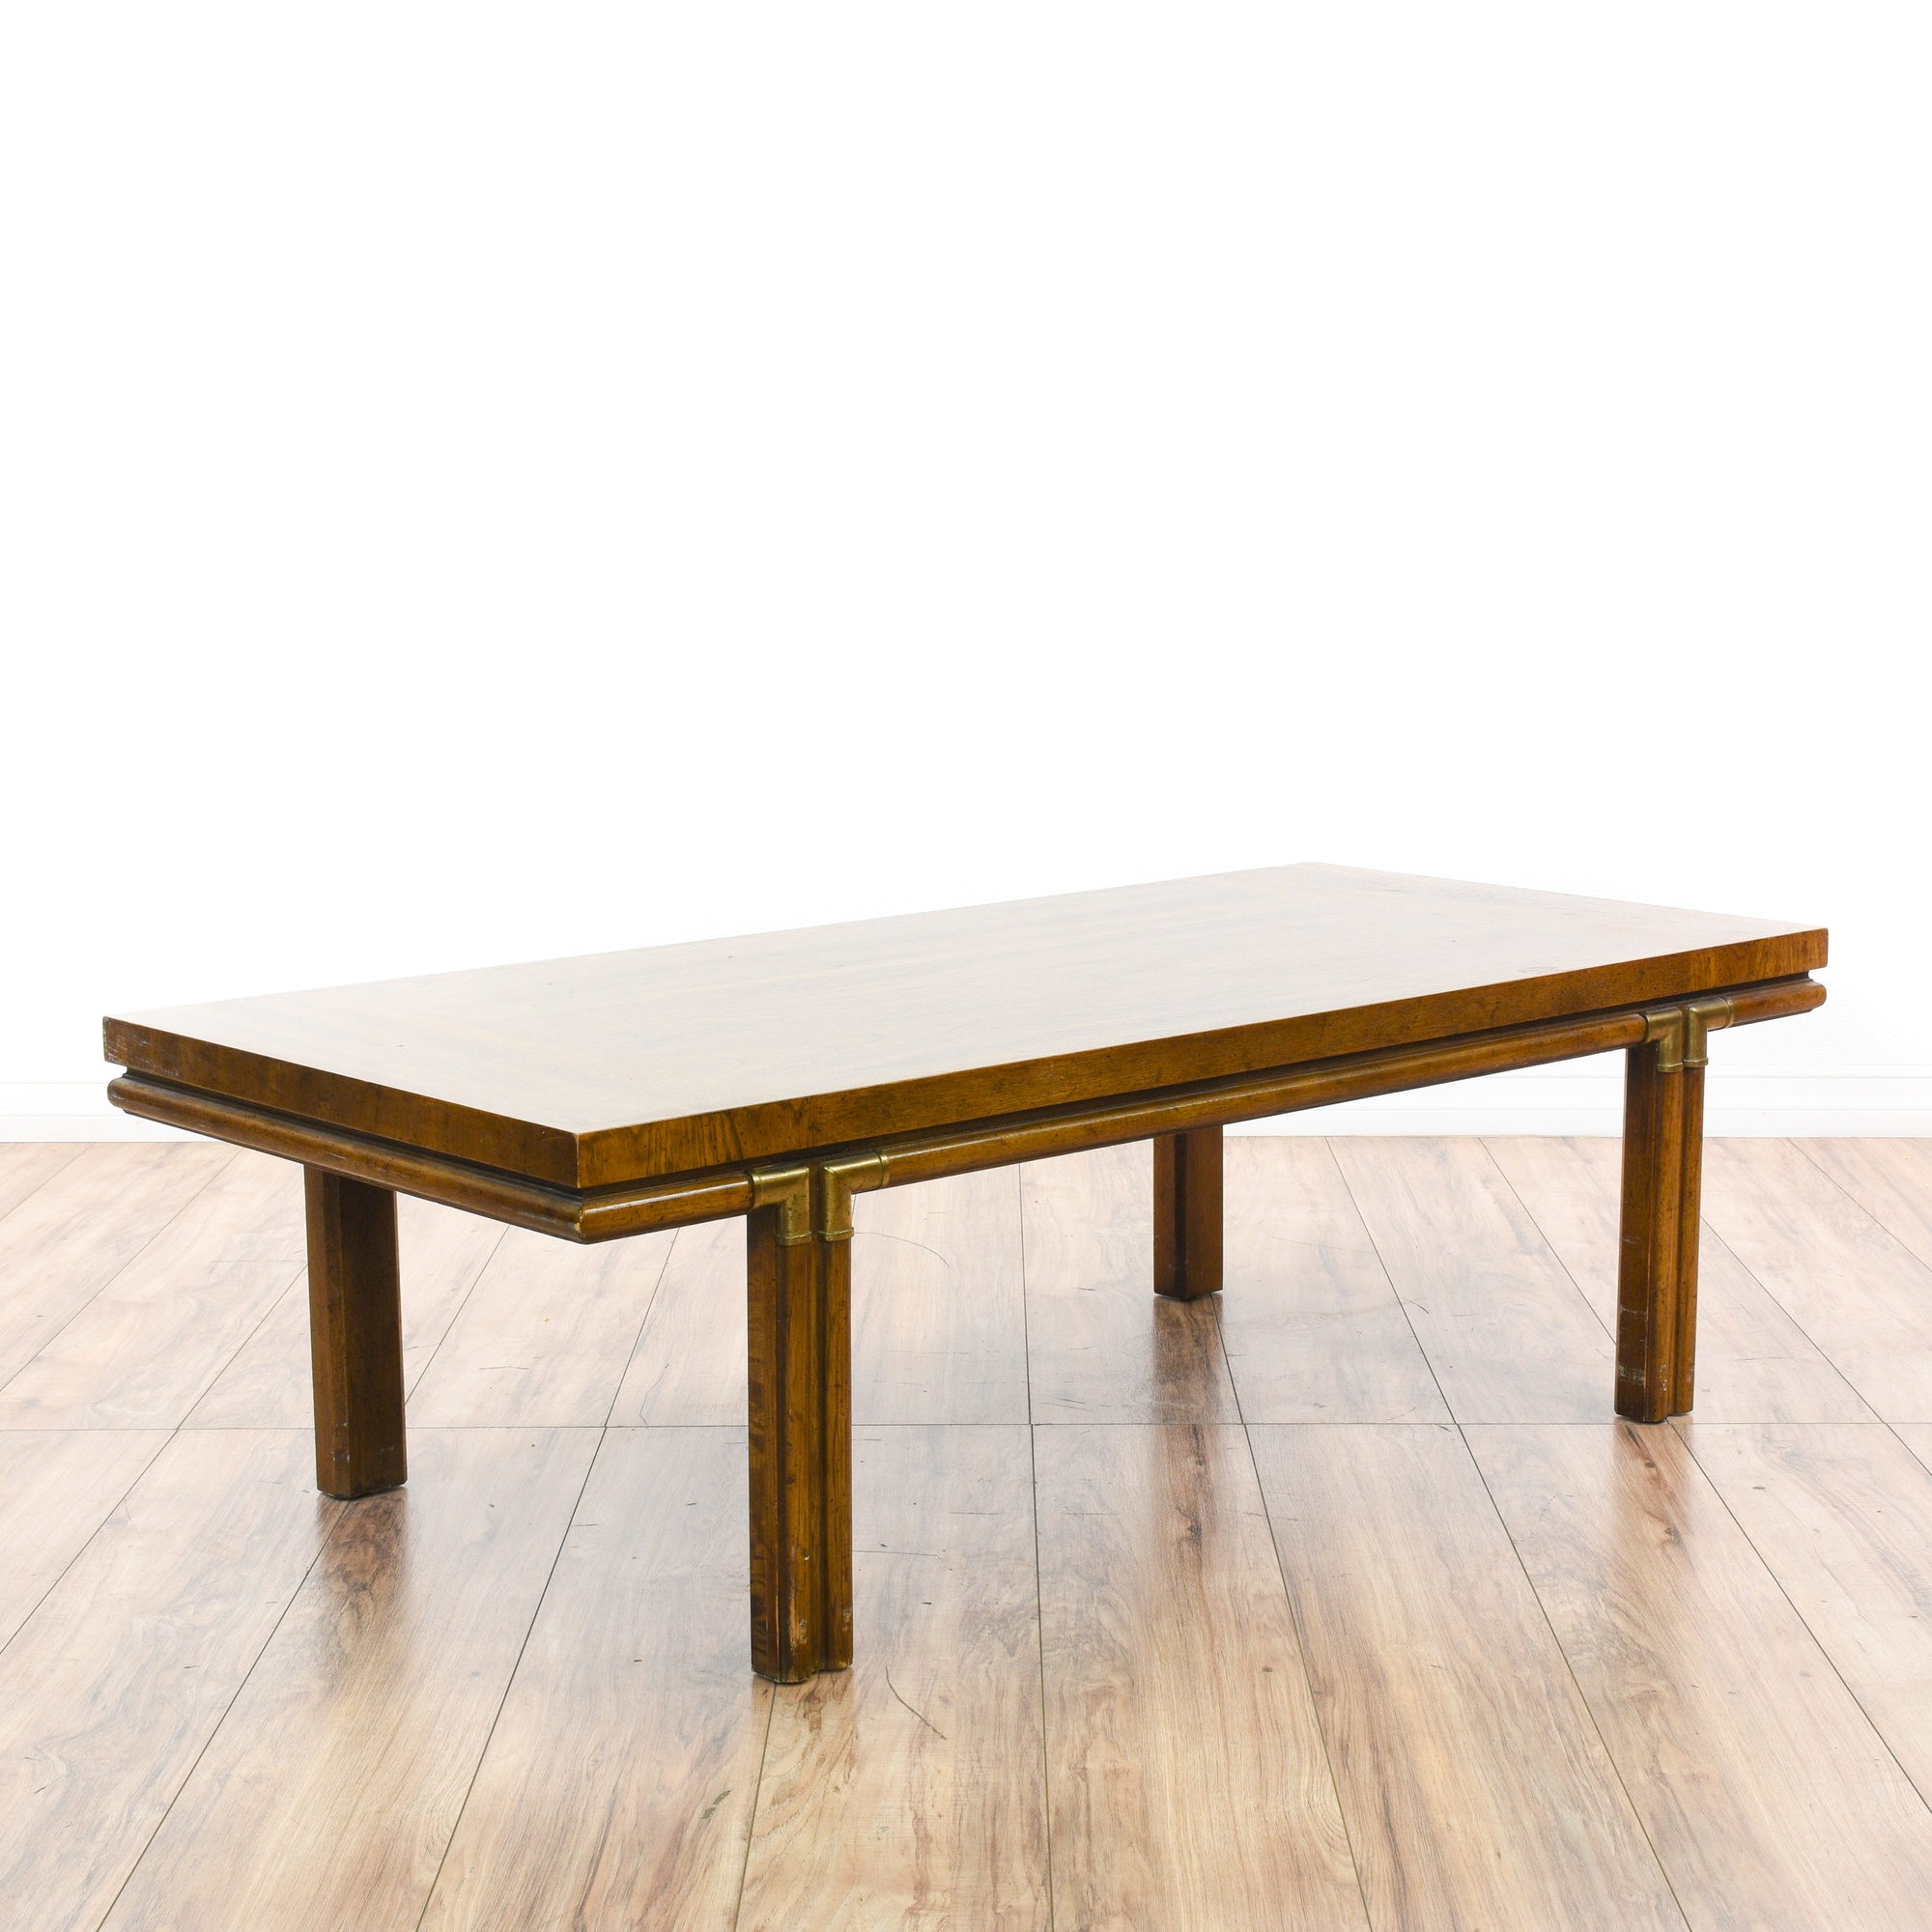 "Drexel Heritage Accolade"" Campaign Coffee Table"